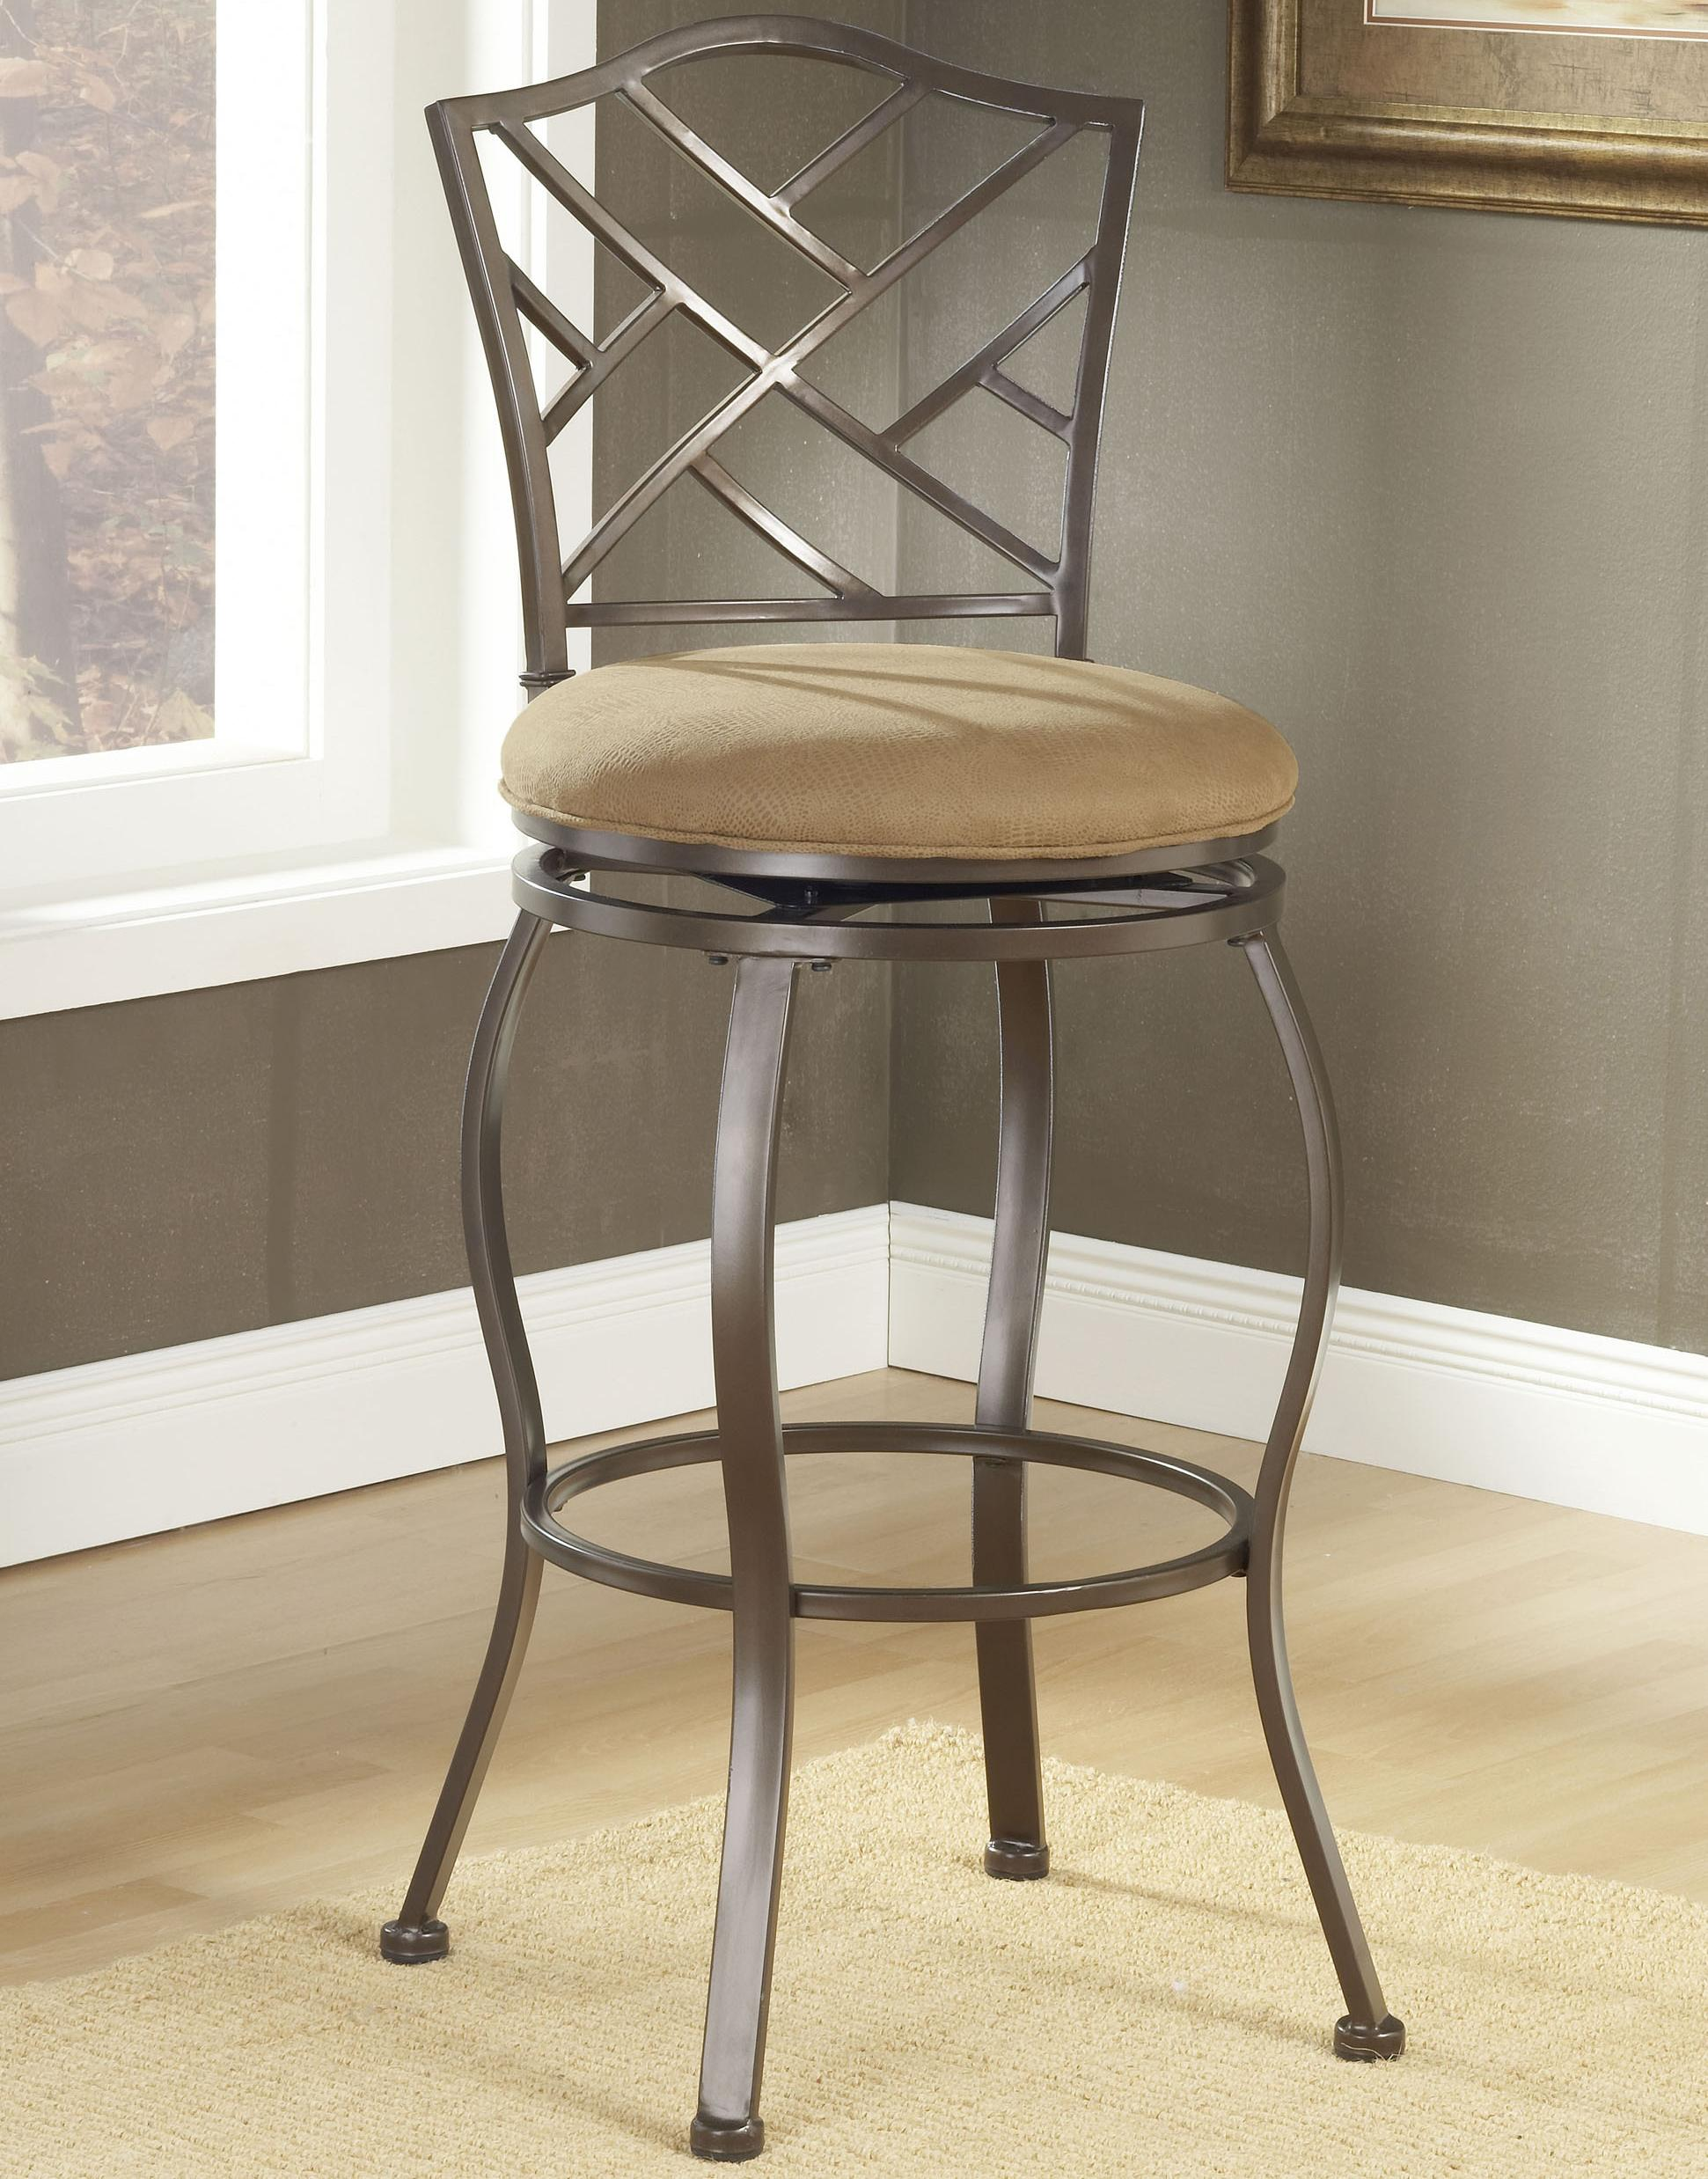 counter height swivel bar stools with backs 24 FOIRNZV